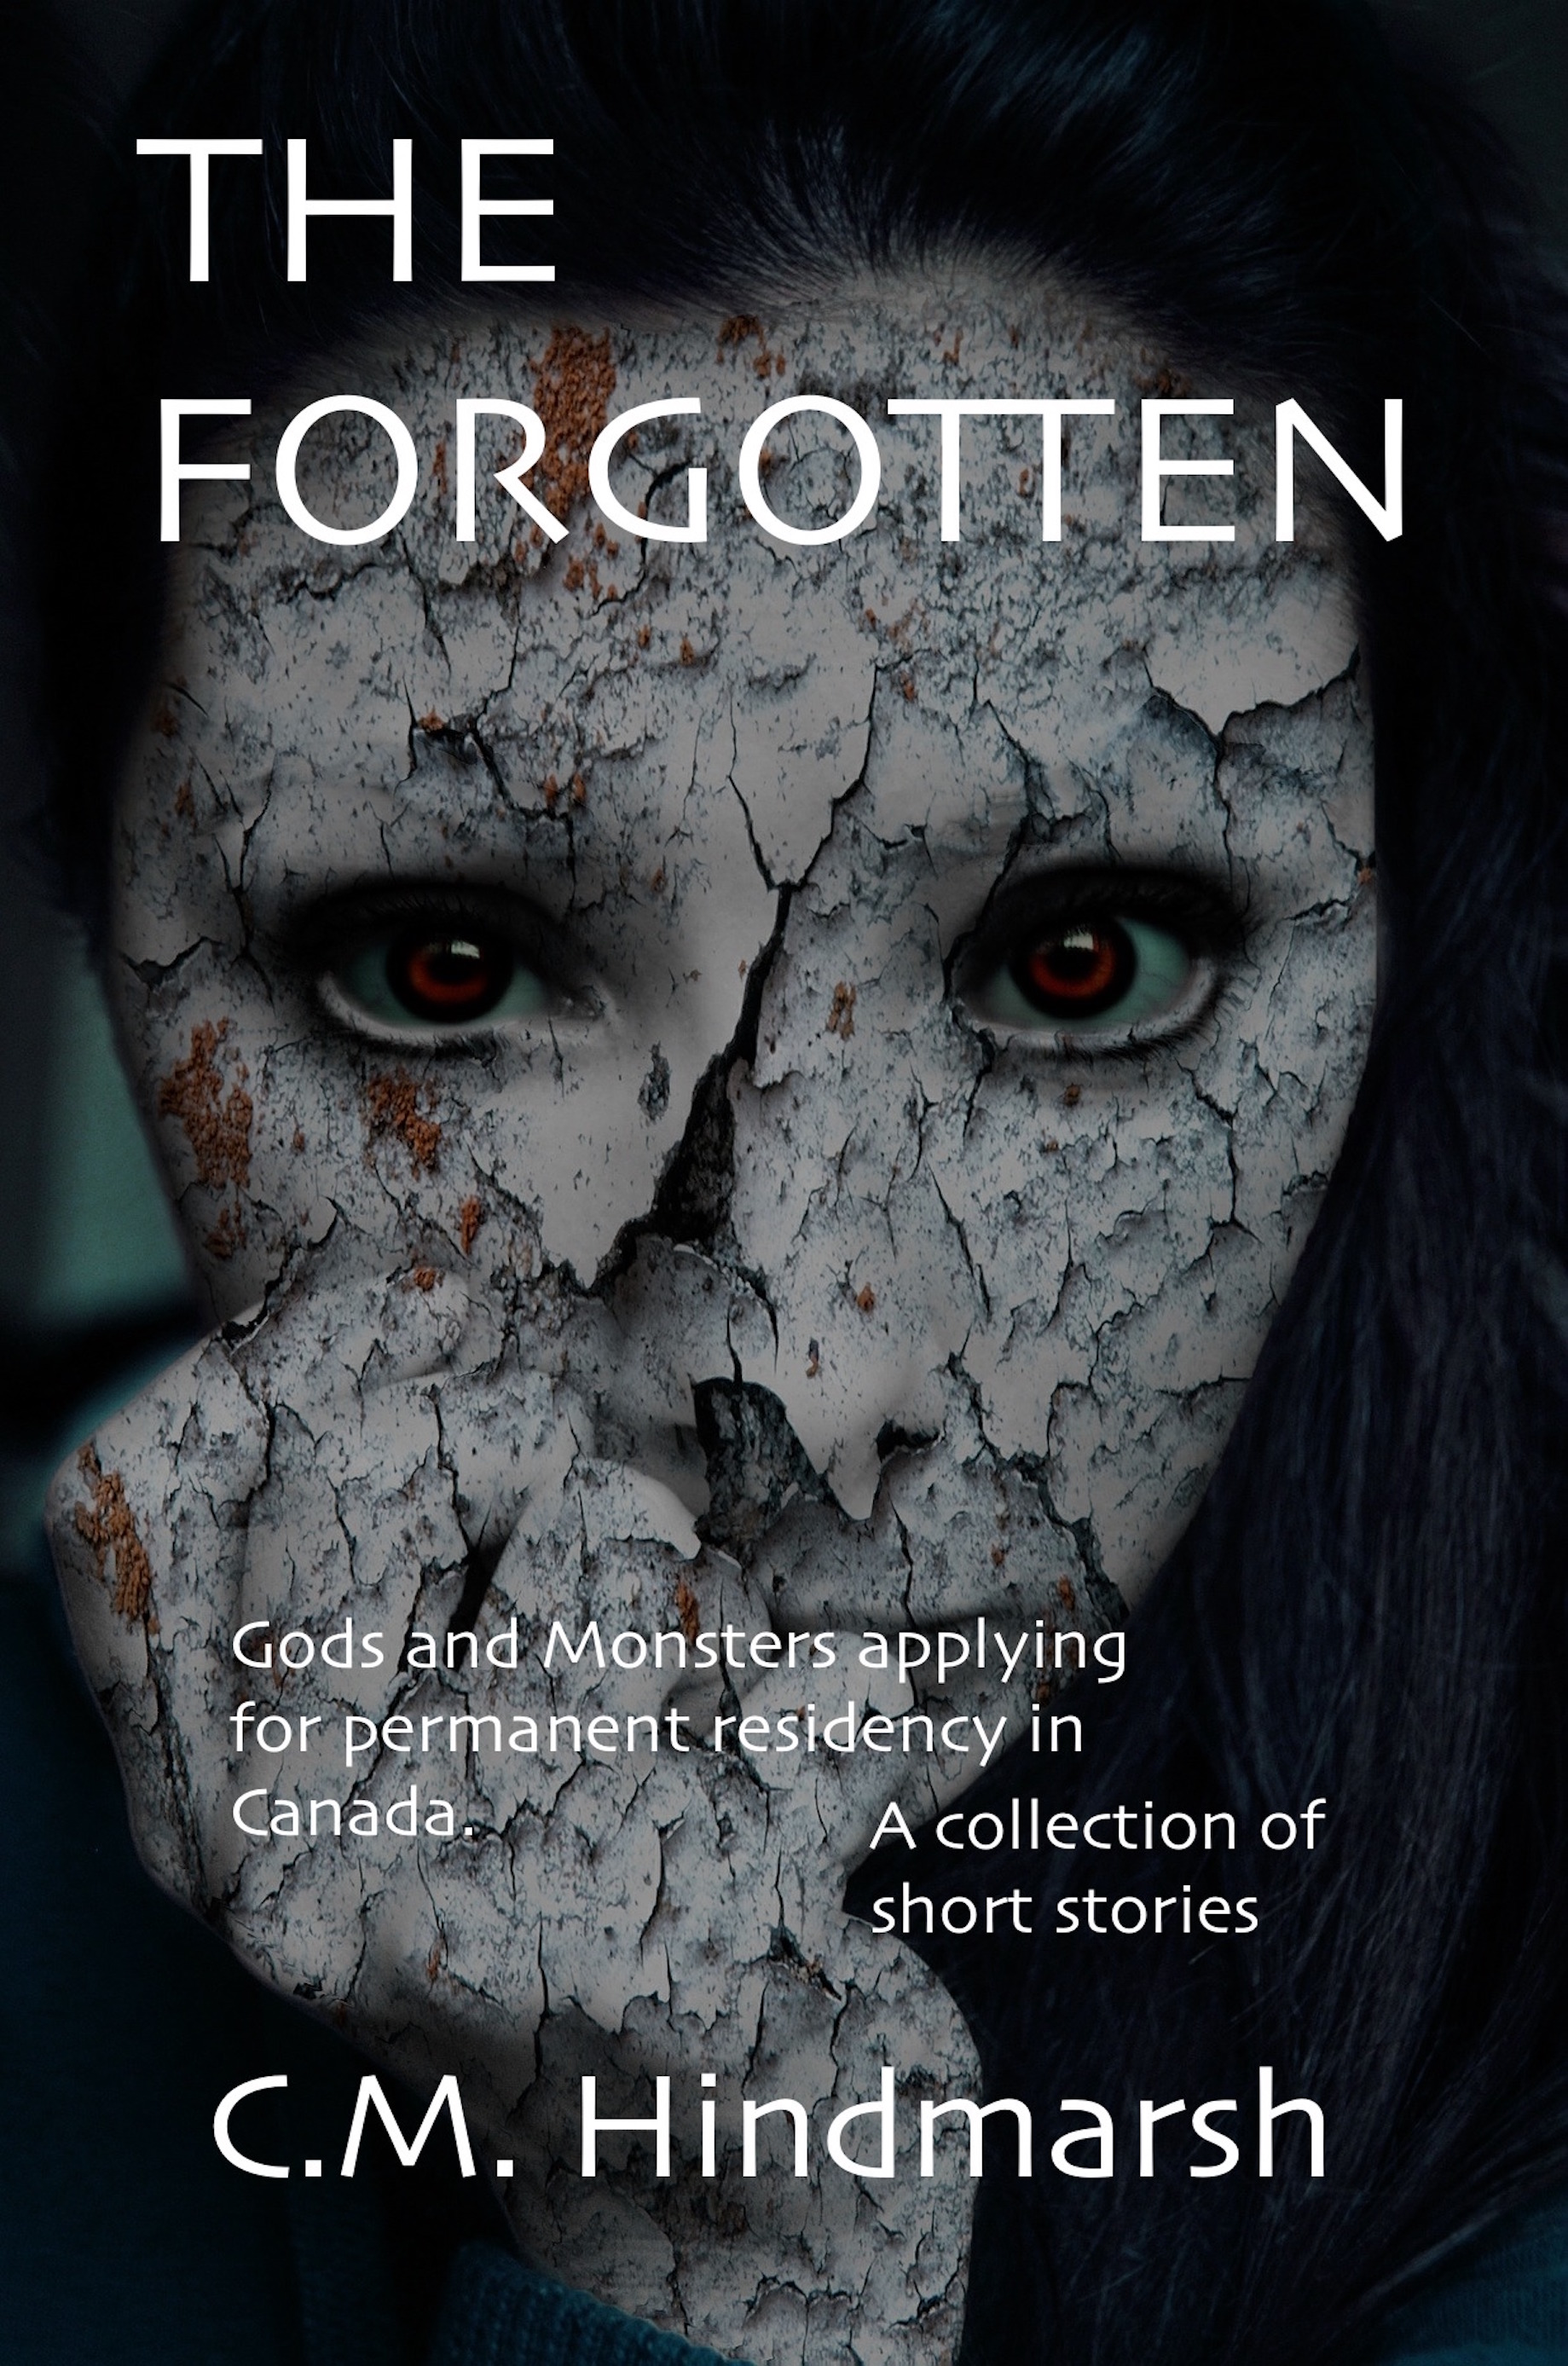 The Forgotten - a collection of short stories by C.M.Hindmarsh